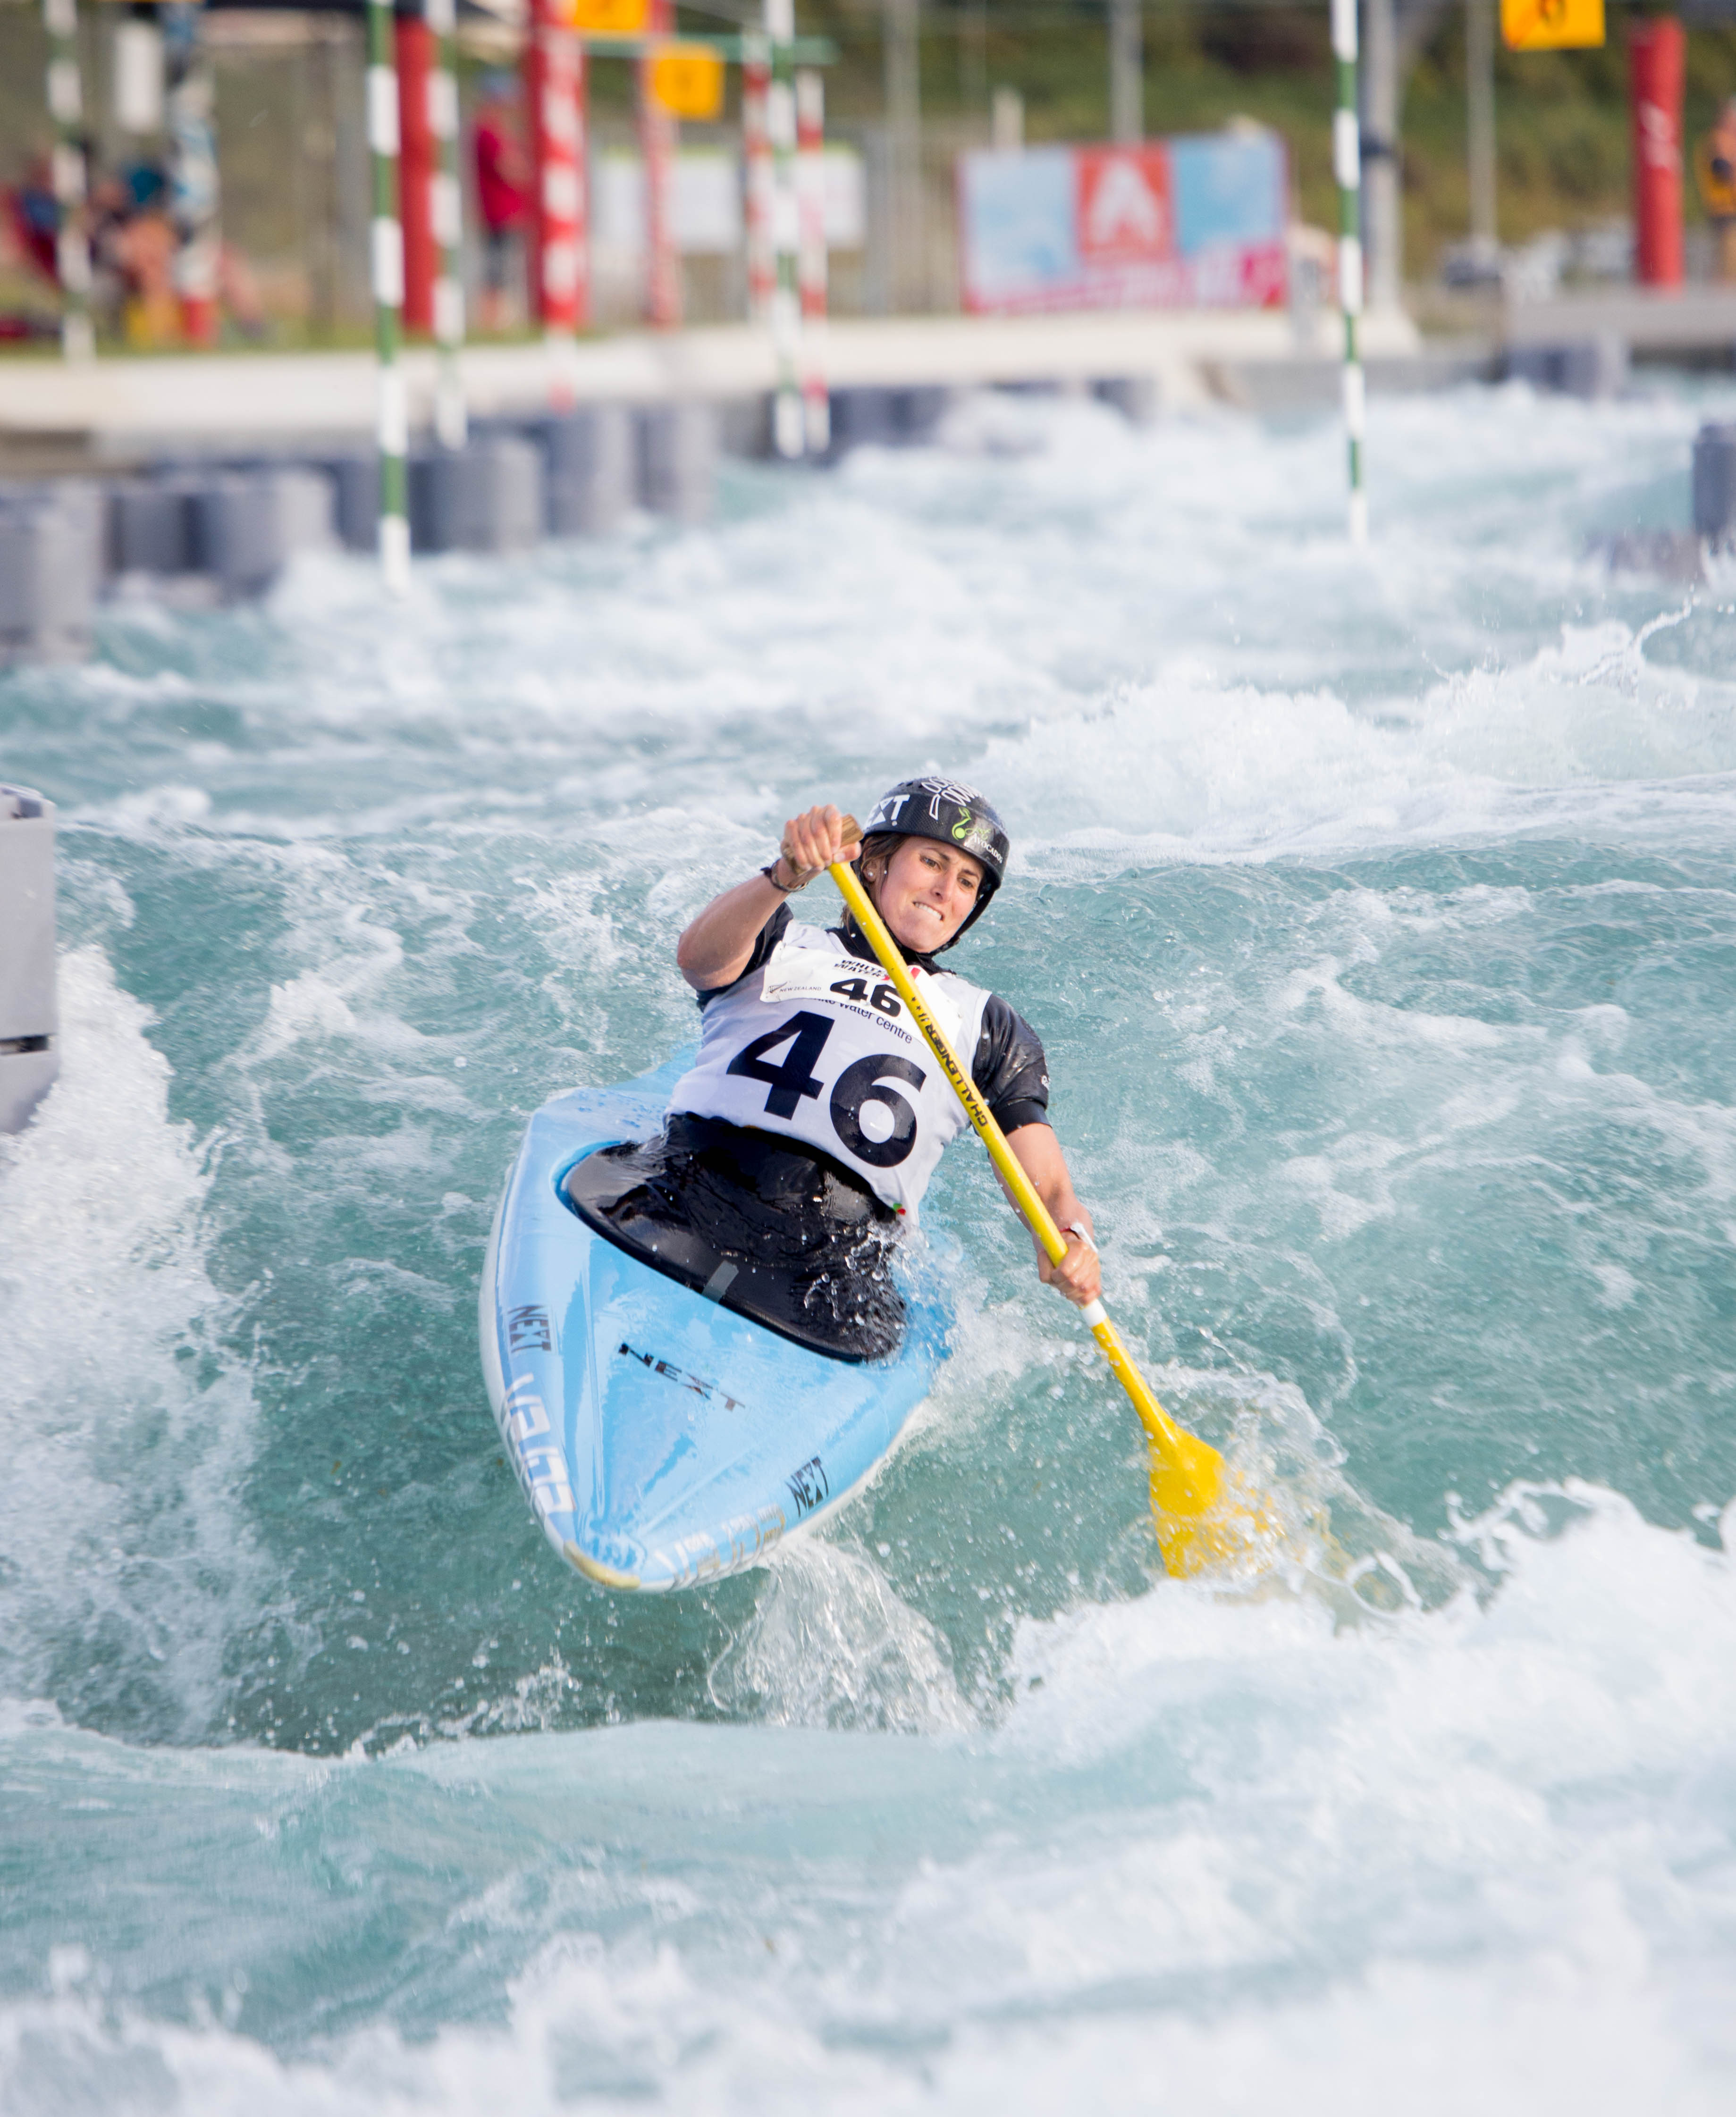 New Zealand kayaker Luuka Jones competing in the C1 class at the Whitewater XL event in AUckland this week. Photo by Jamie Troughton/Dscribe Media Services